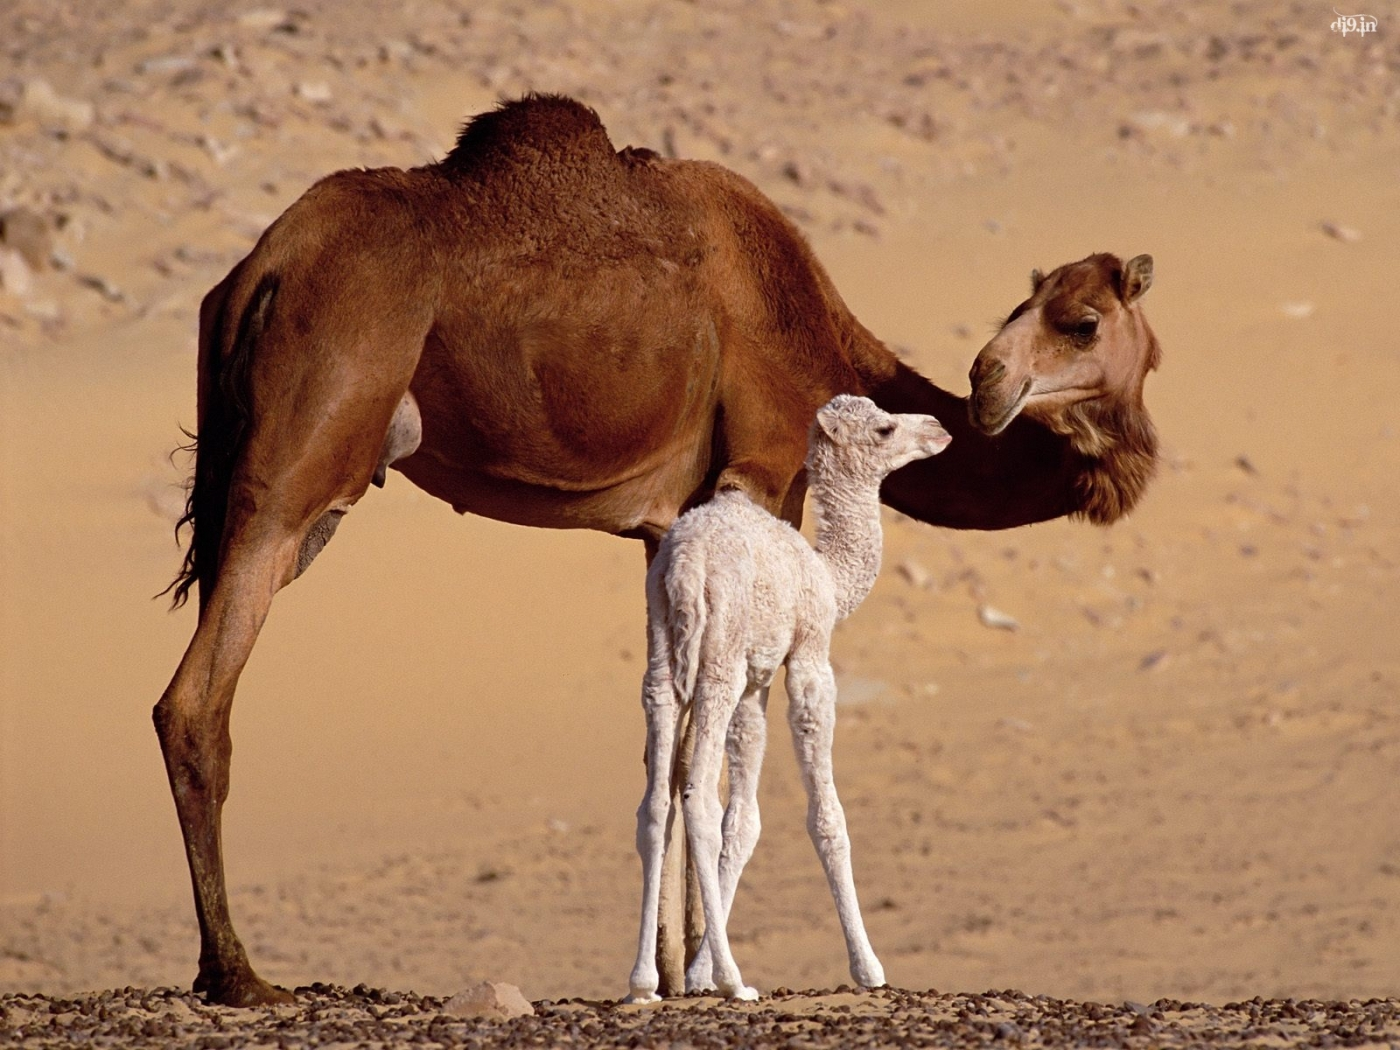 33143 download wallpaper Animals, Camels screensavers and pictures for free